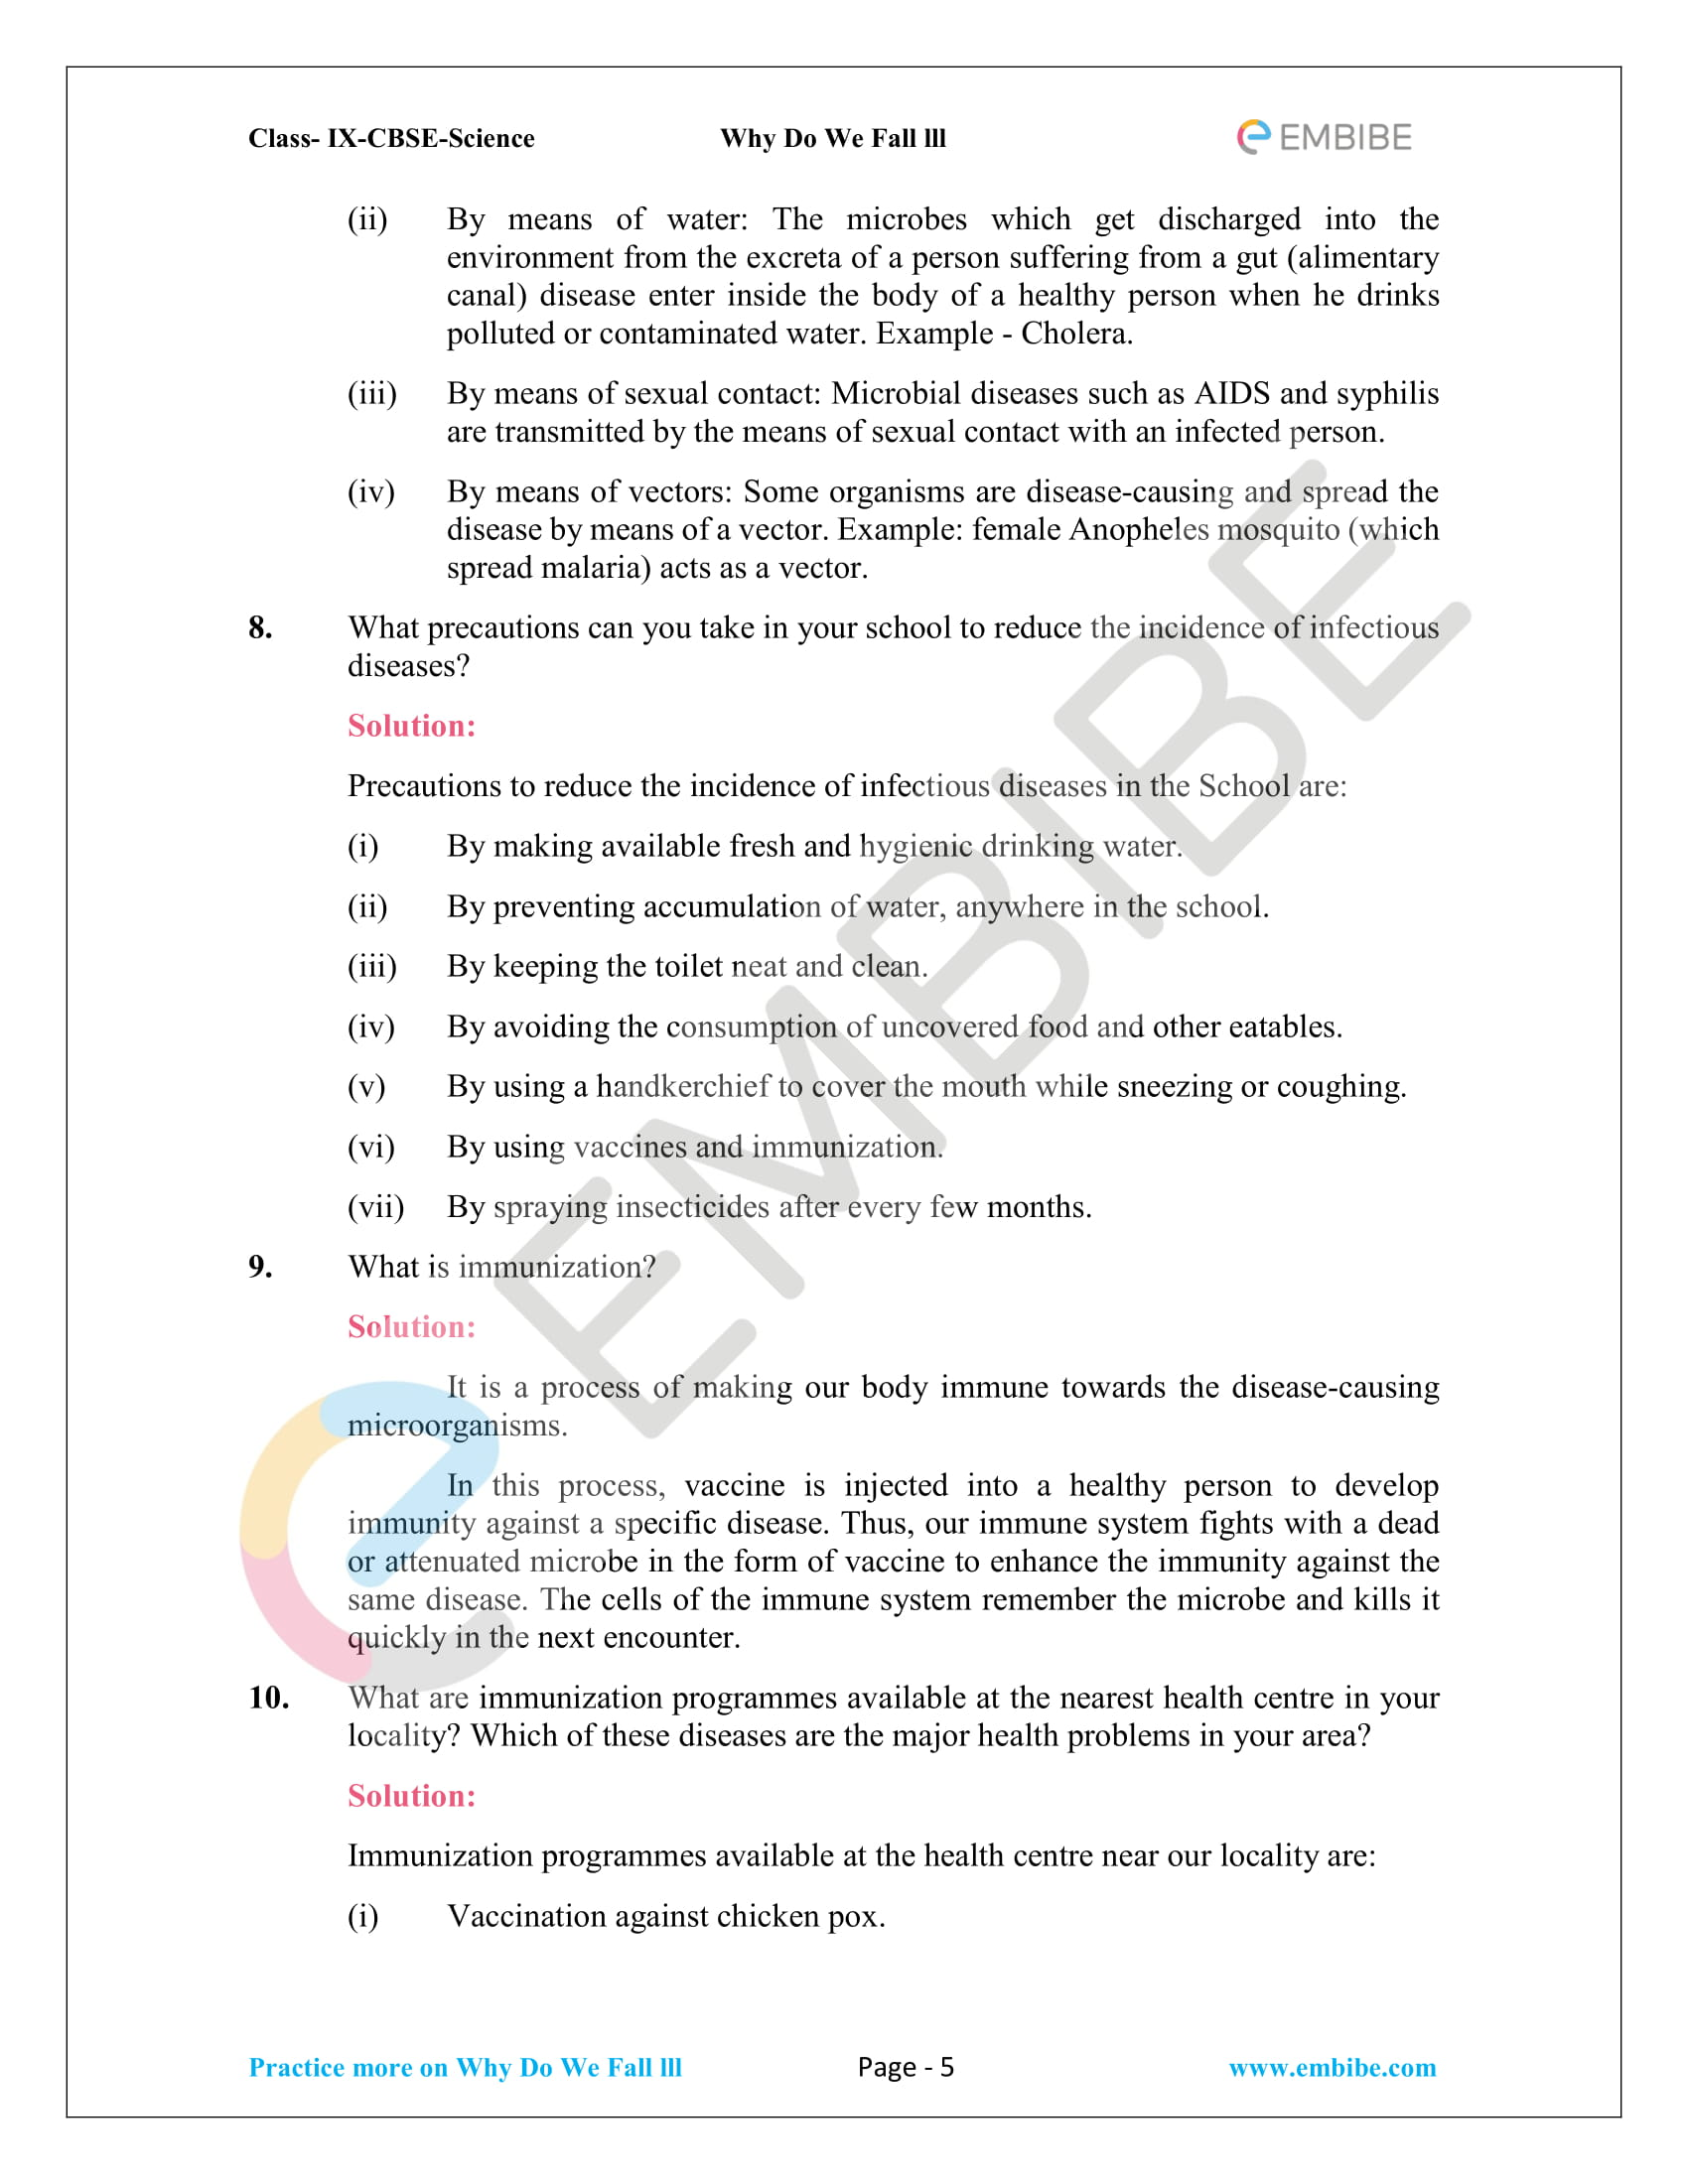 CBSE NCERT Solutions for Class 9 Science Chapter 13-5